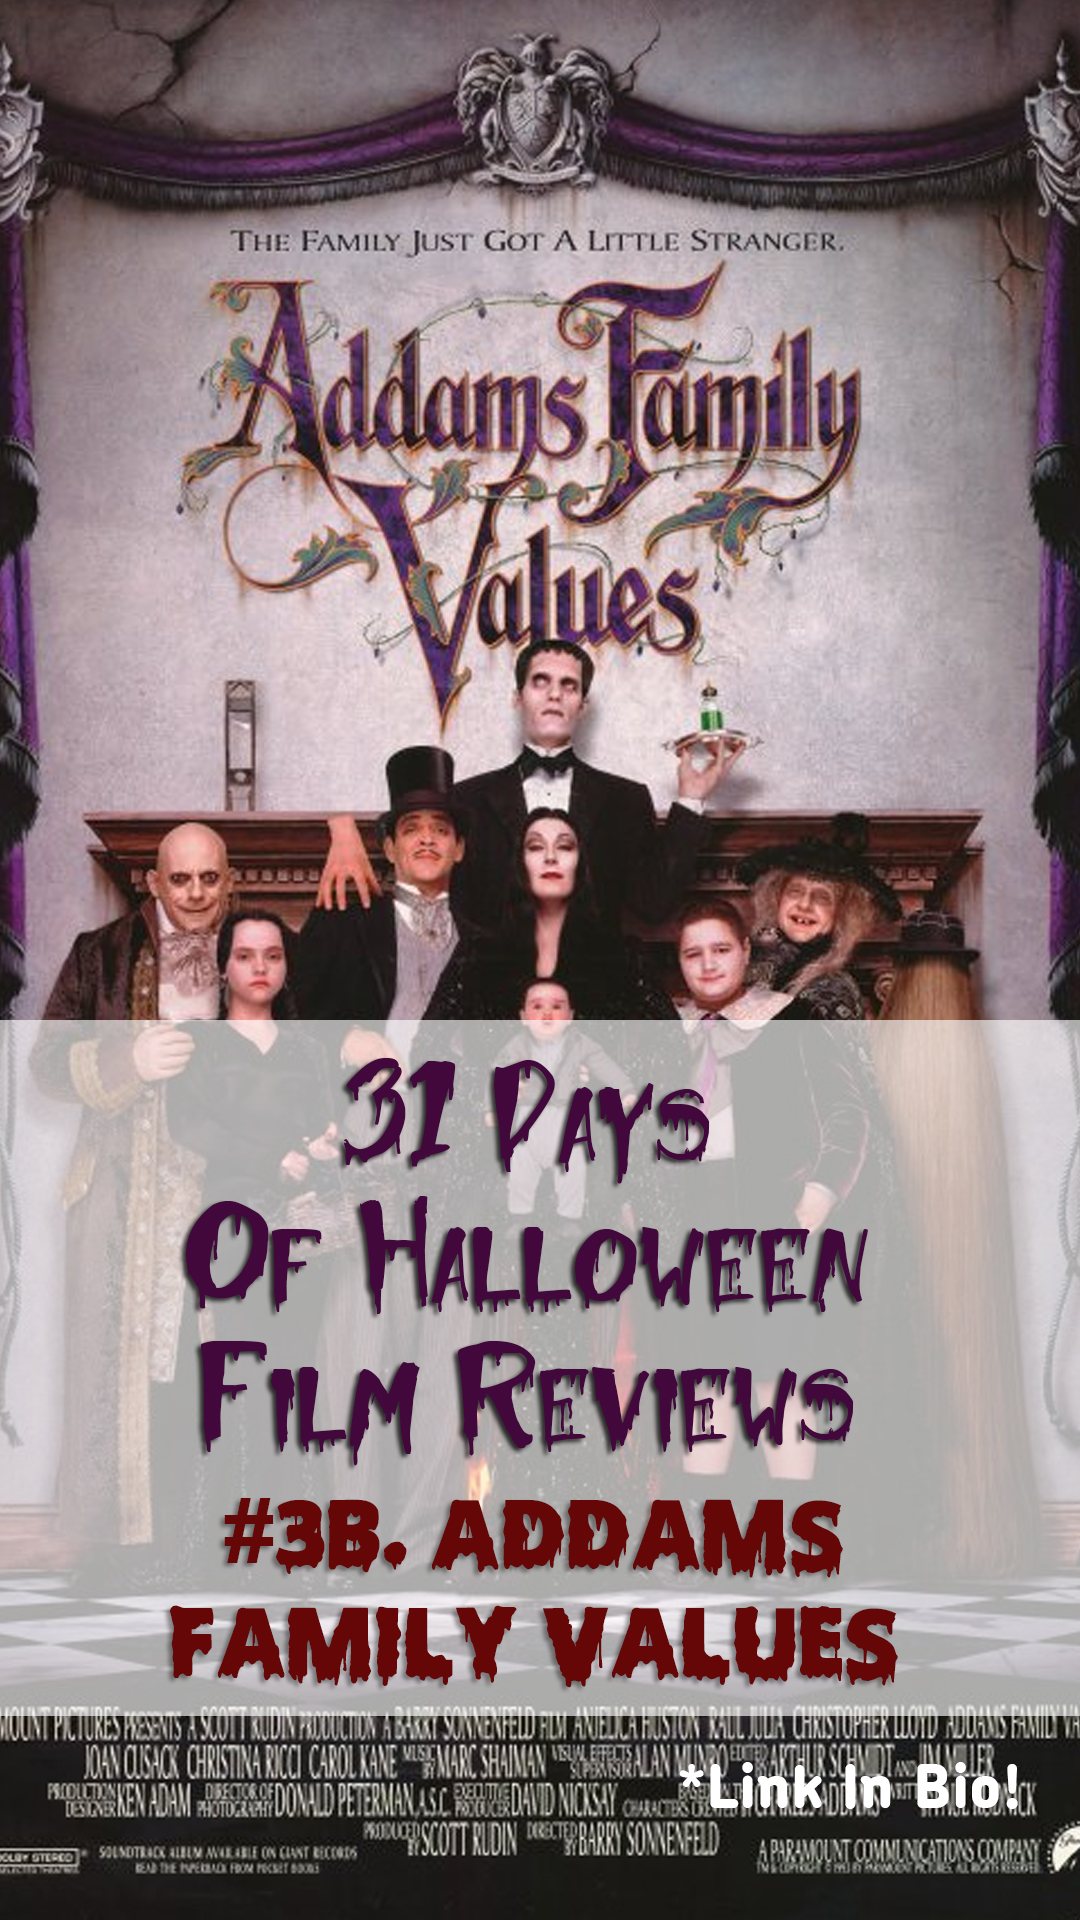 Addams Family Values Film Review